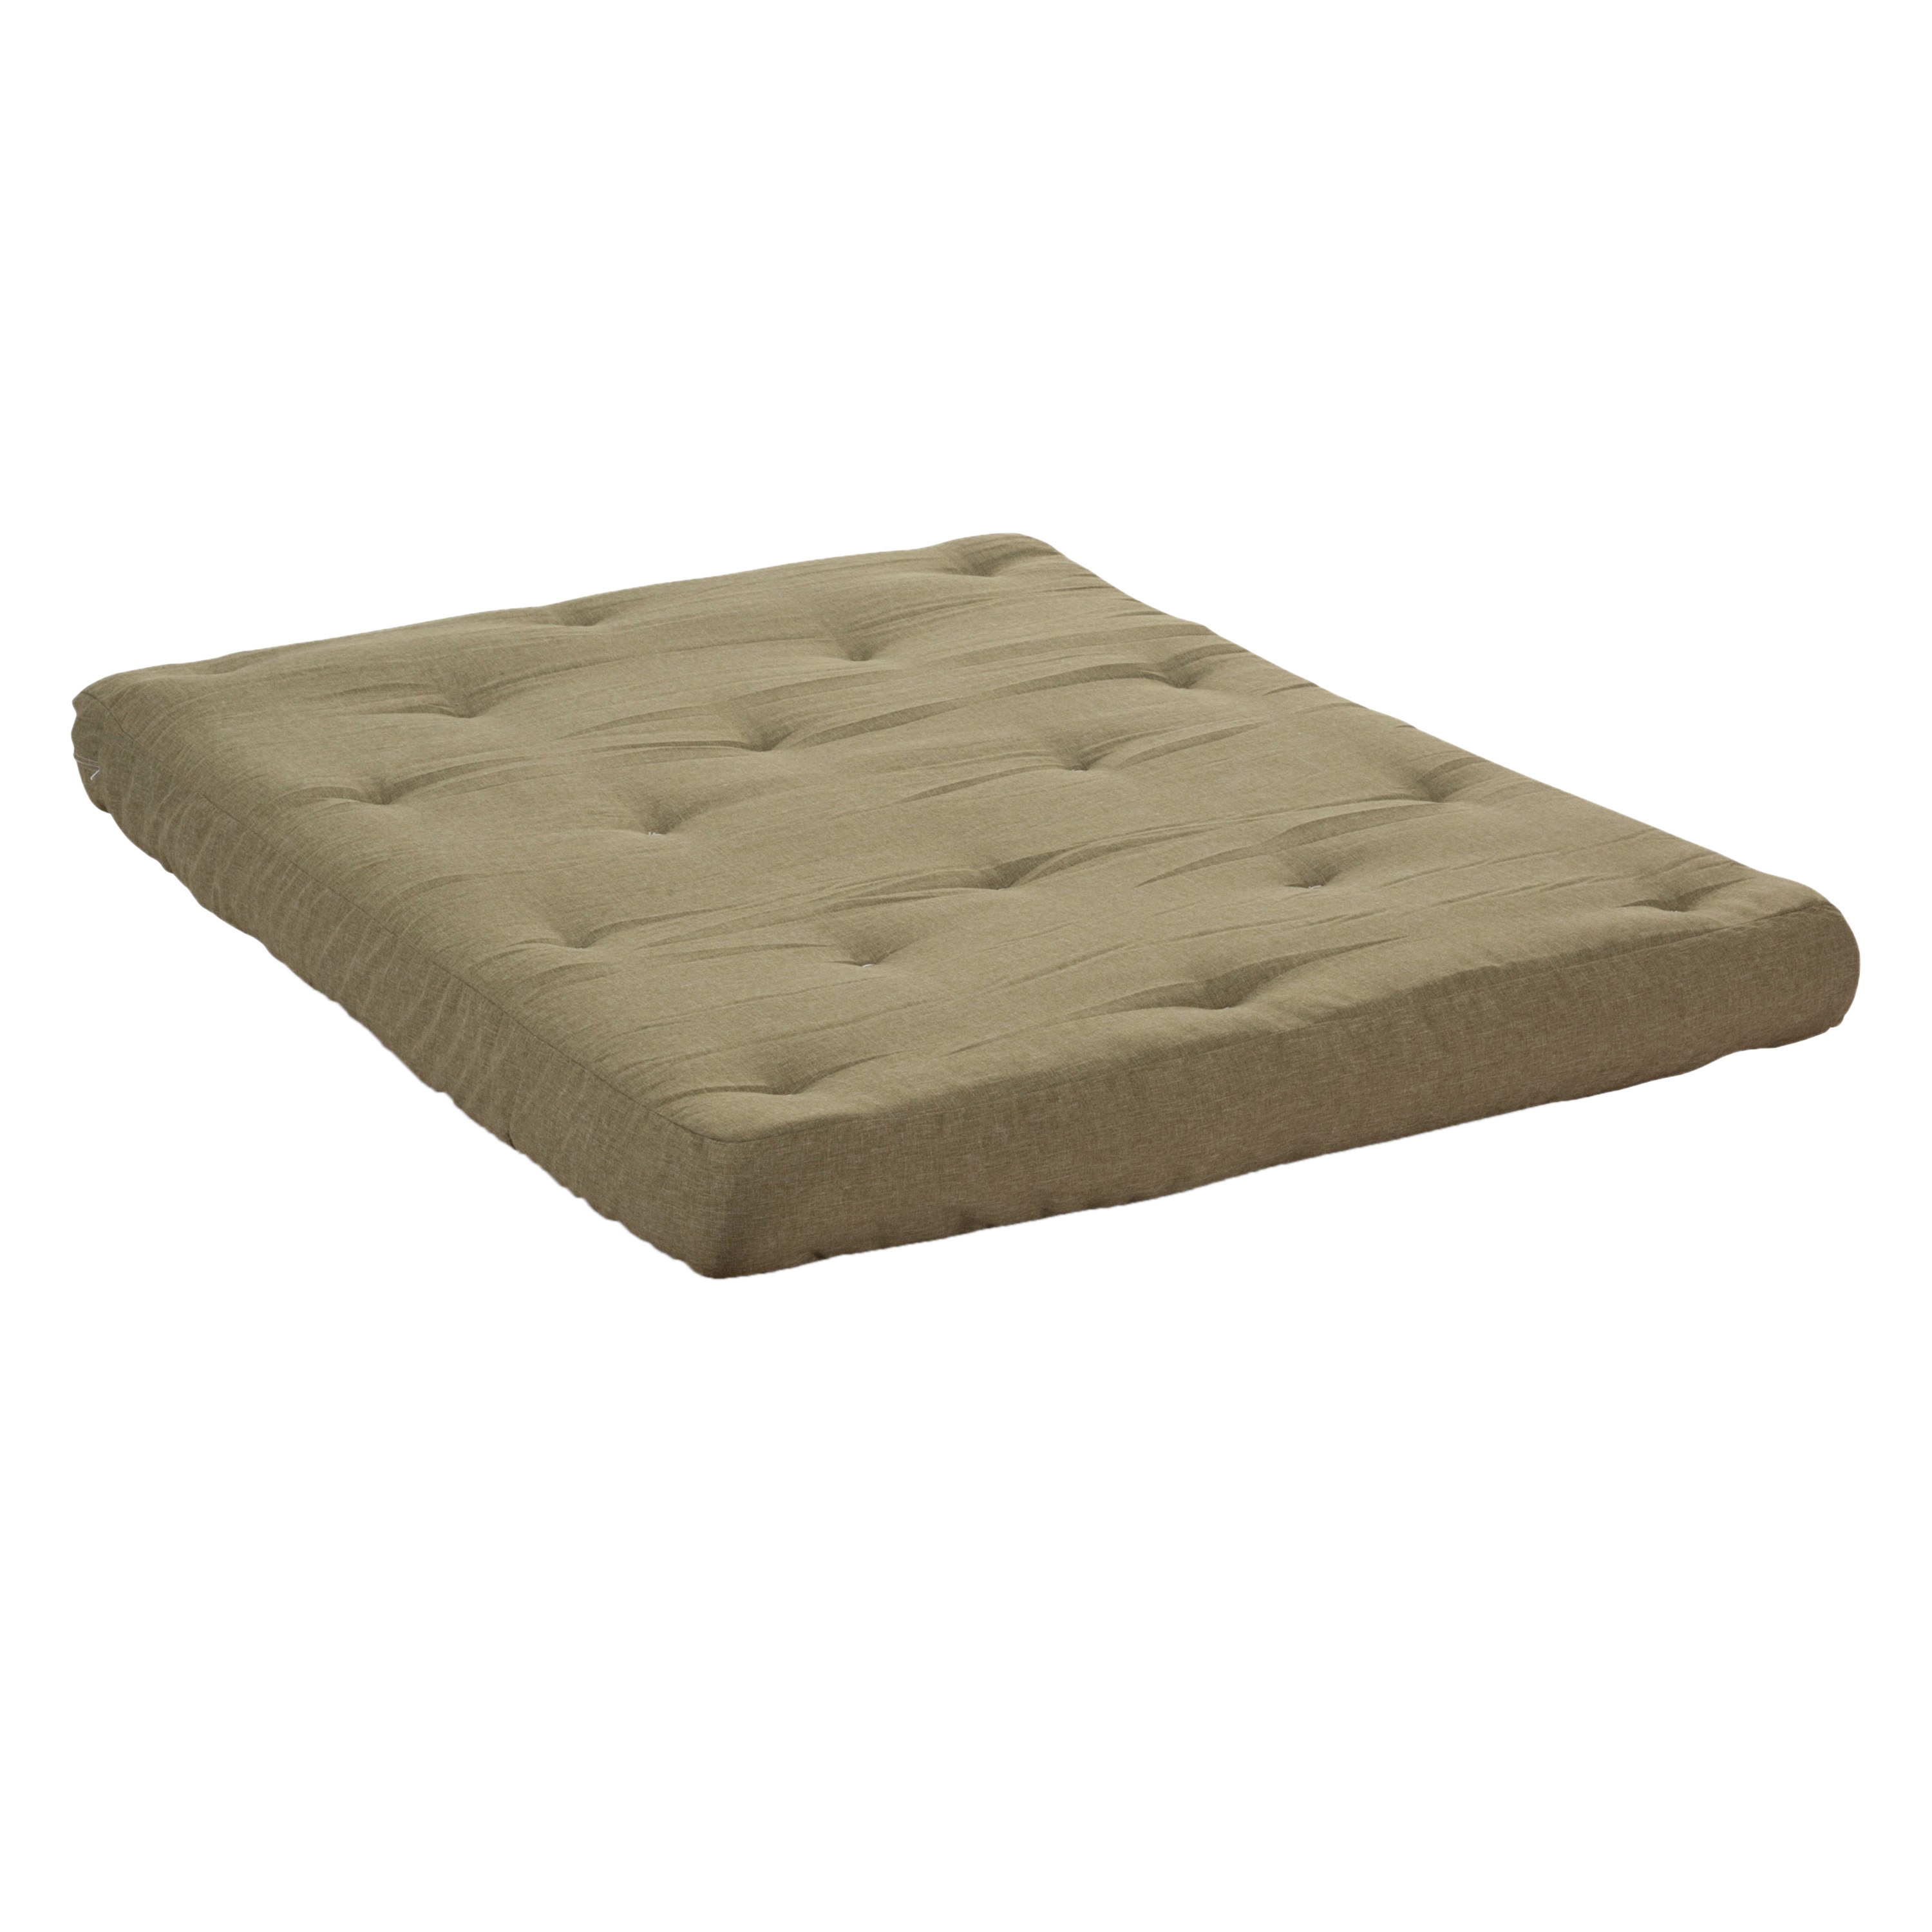 Wolf Corporation S Usf 2 6 Inch Loft Cotton And Certipur Foam Upholstered Futon Mattress